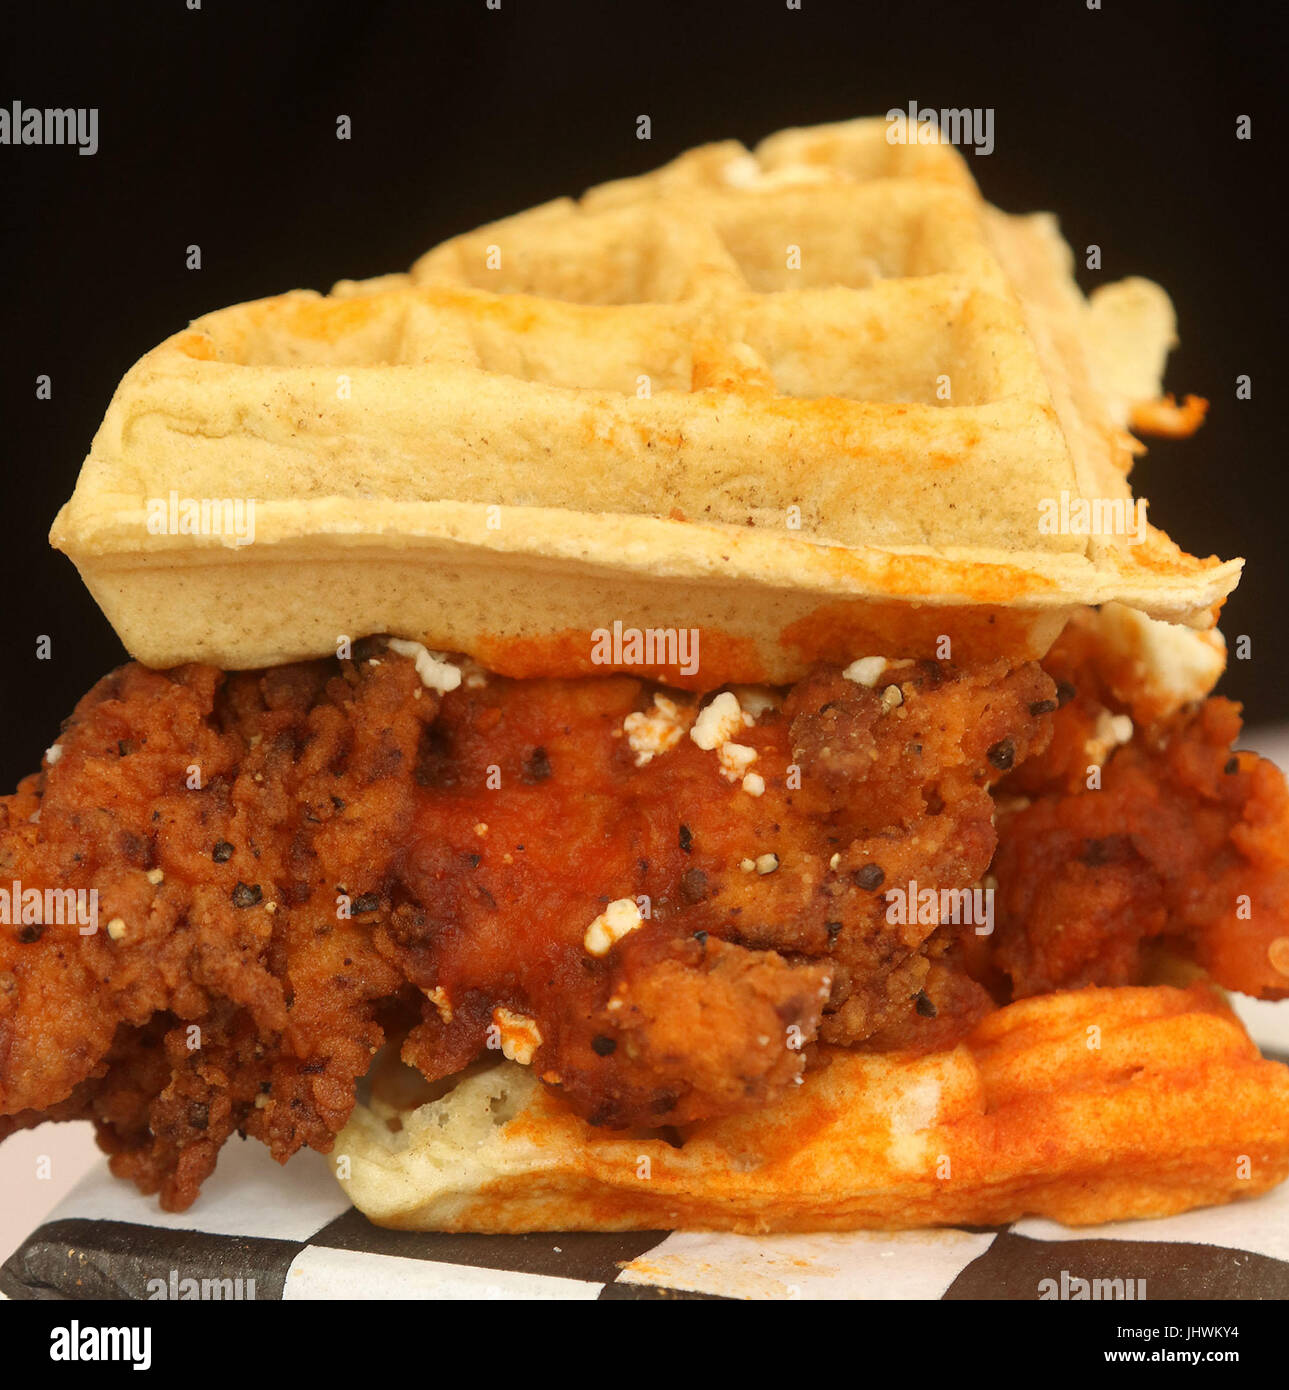 Belgian waffle sandwich with hot battered chicken, feta cheese, hot sauce and spices - Stock Image